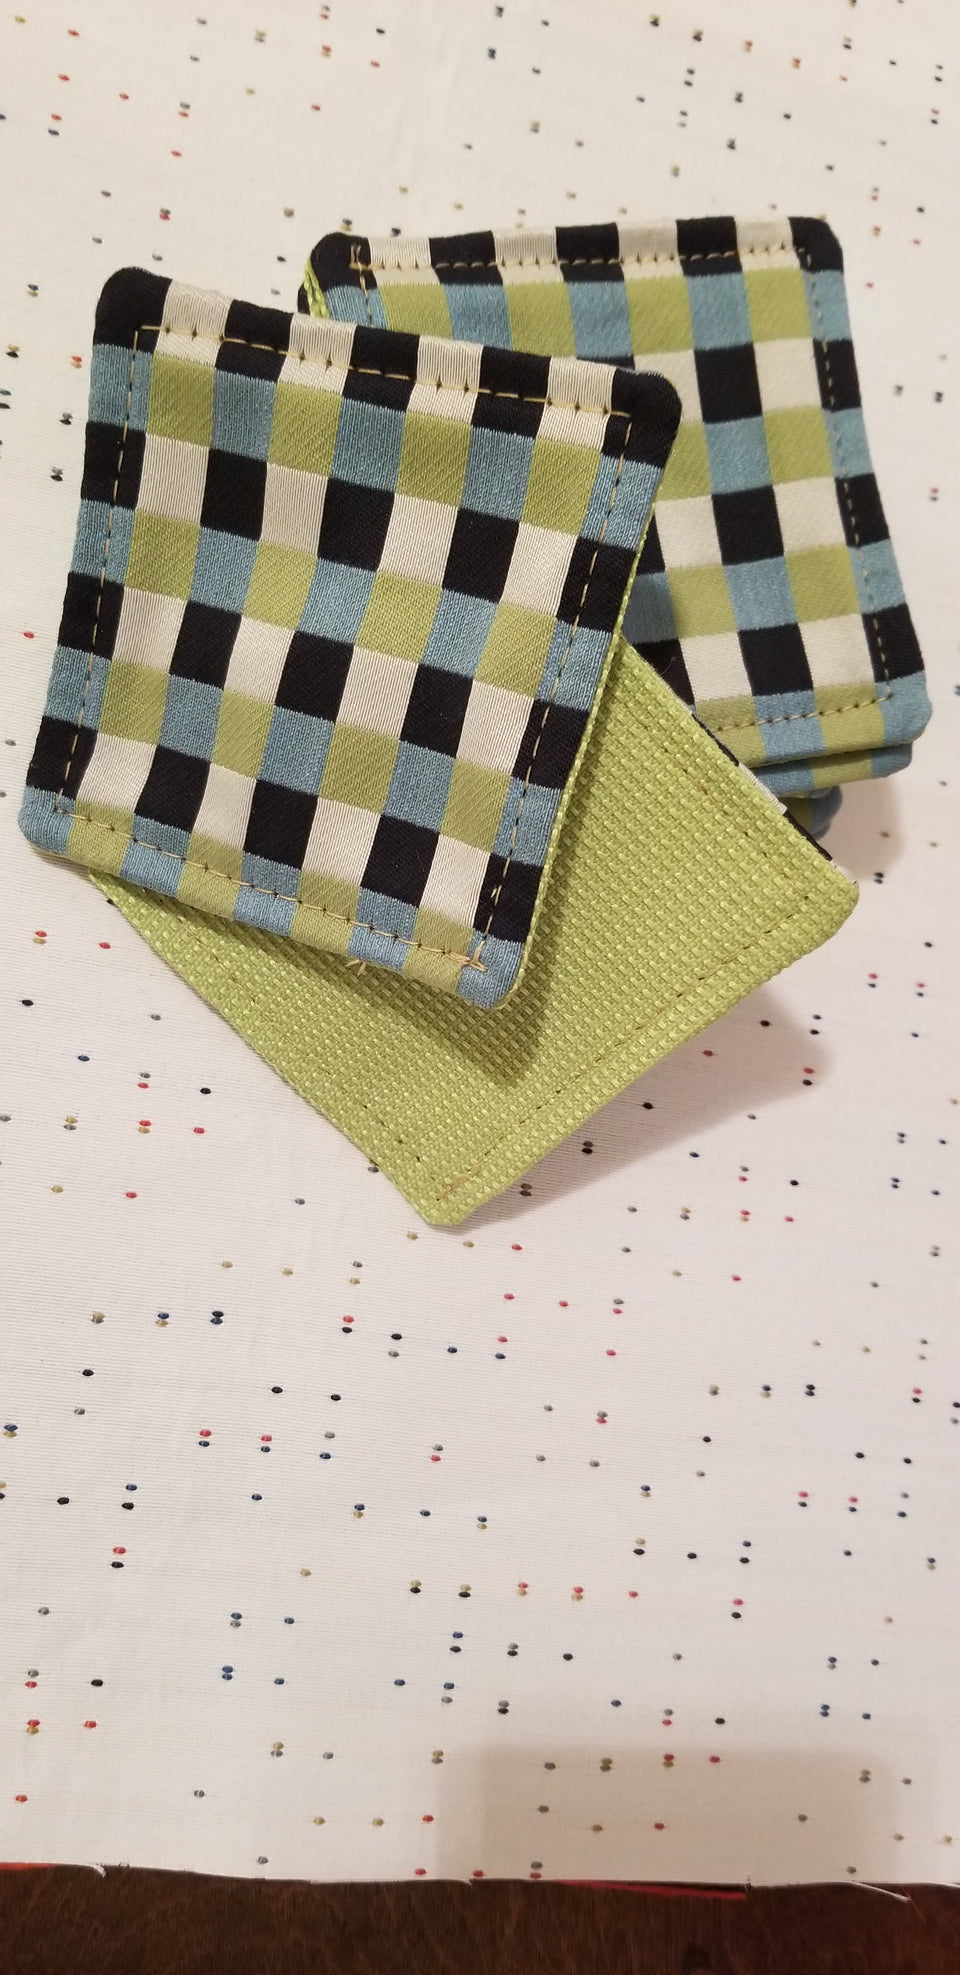 Chuck black, white, lime green, and turquoise gingham check patterned coasters front back detail top view.